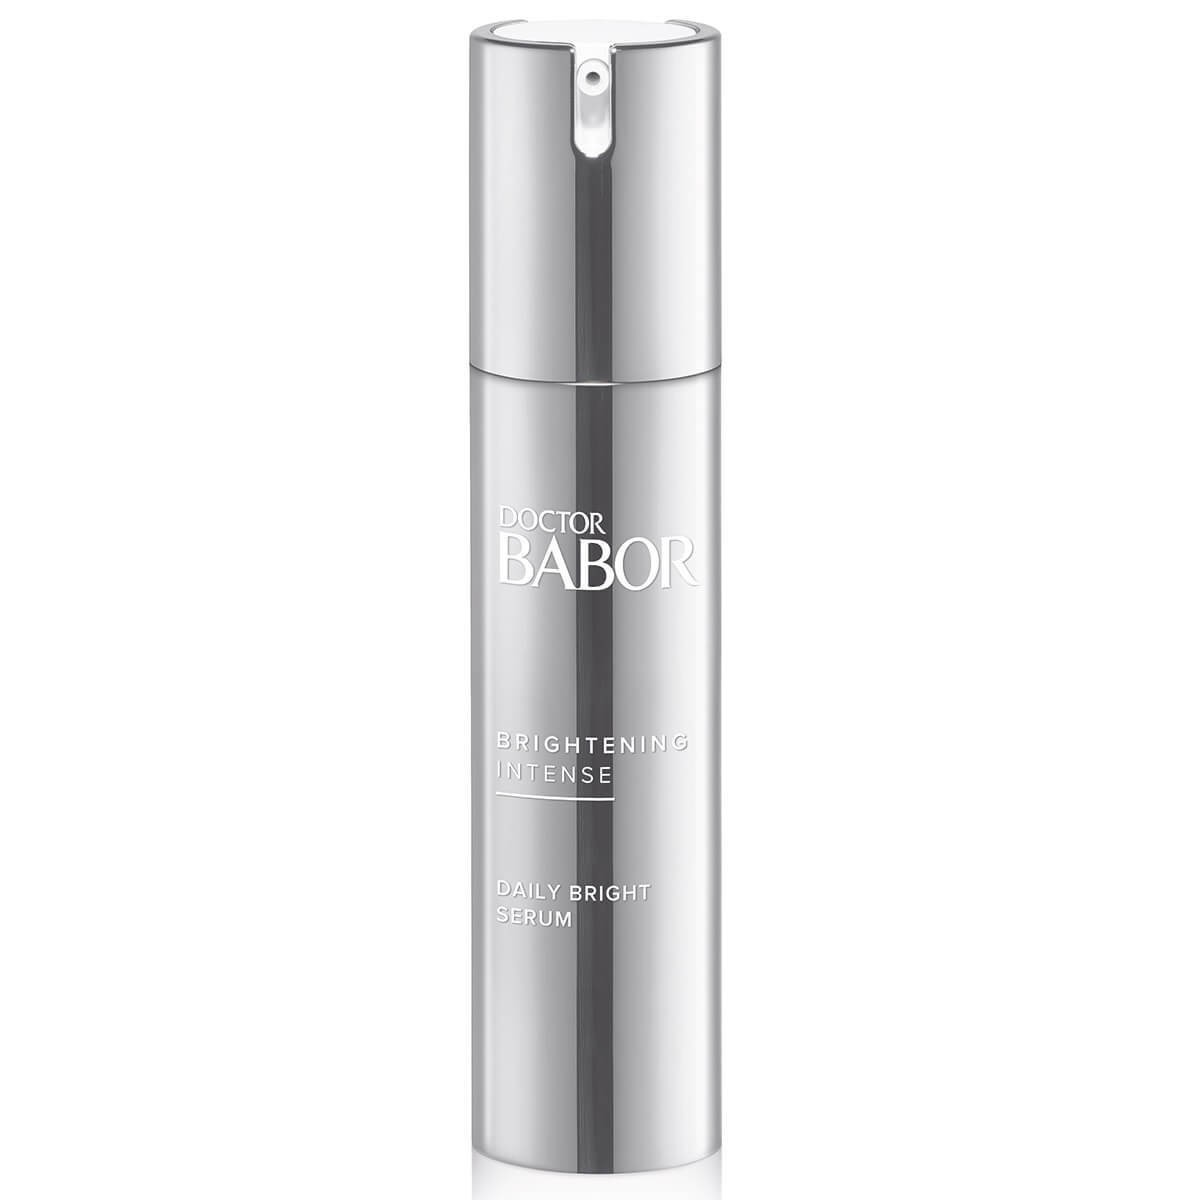 Сыворотка для лица Babor Brightening intense Daily Bright Serum 50мл